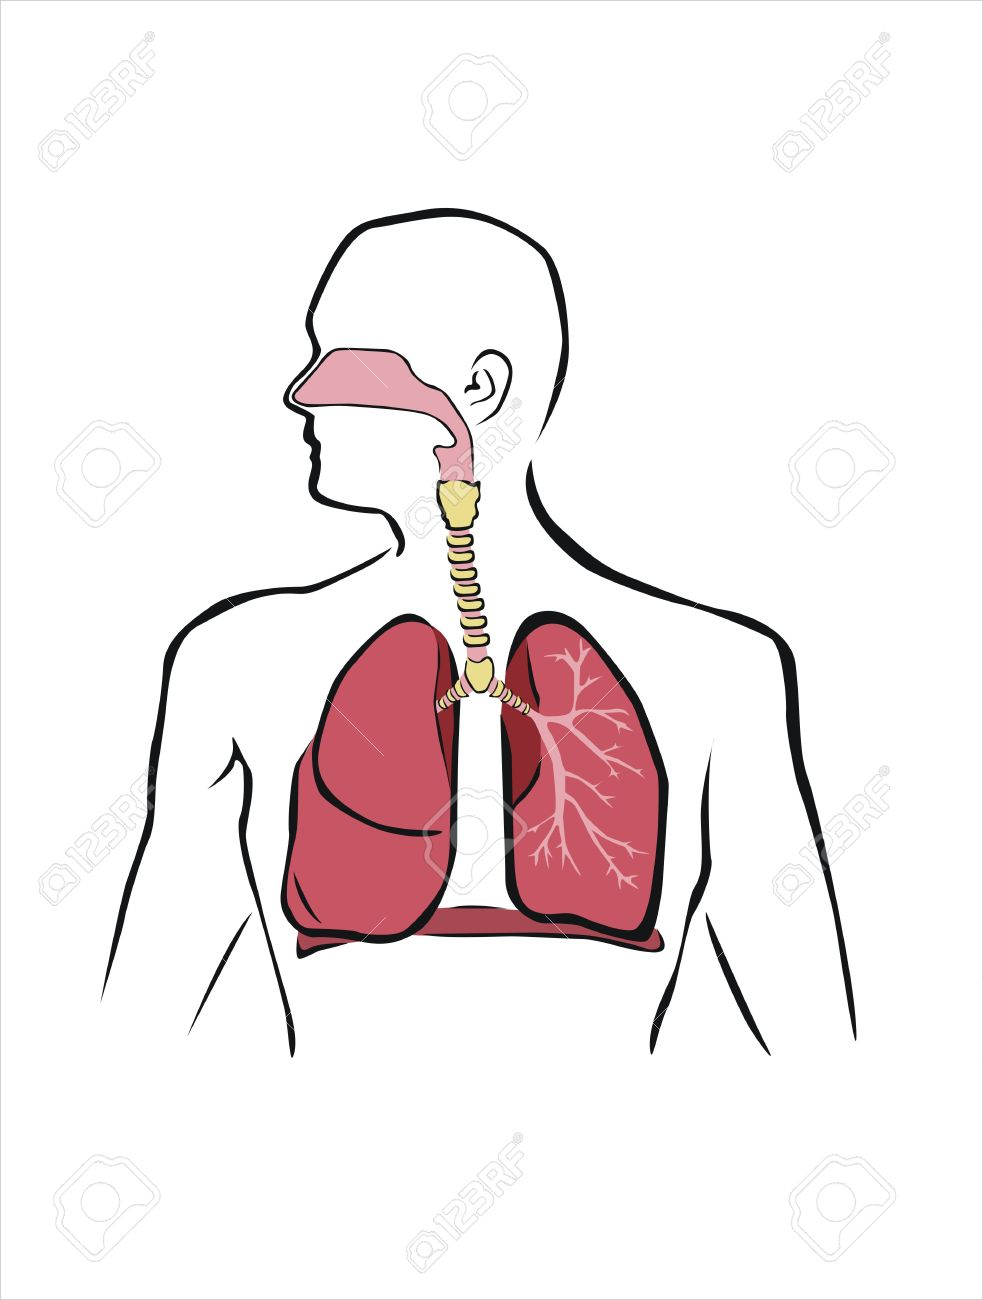 Diagram of human respiratory system royalty free cliparts vectors diagram of human respiratory system stock vector 39959592 ccuart